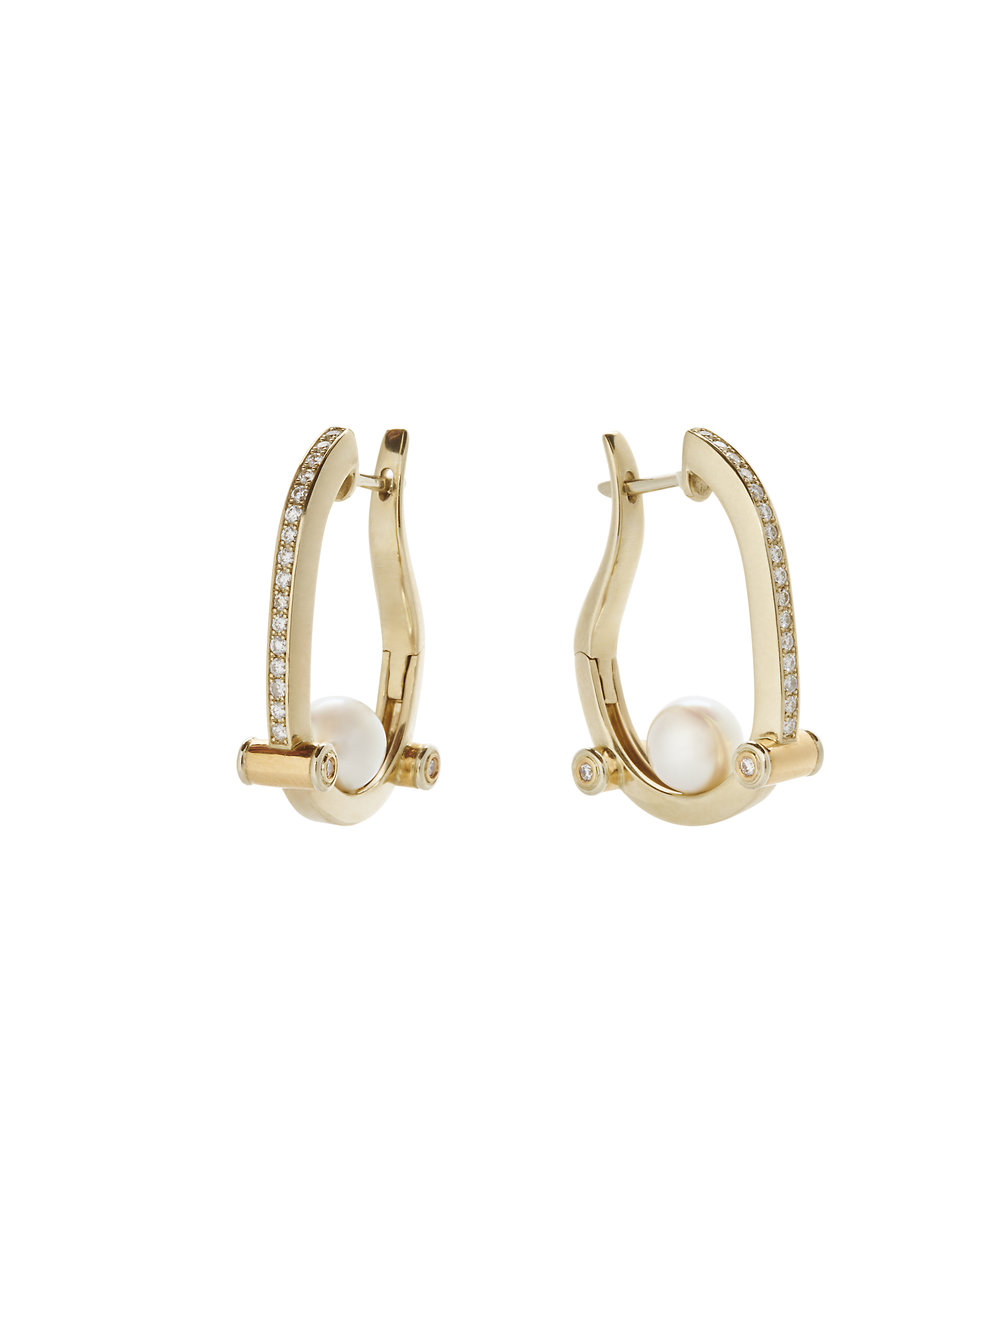 HOOP EARRINGS   18 K GOLD  SOUTH SEA PEARLS  .48 CT OF DIAMONDS      Contact for inquiry